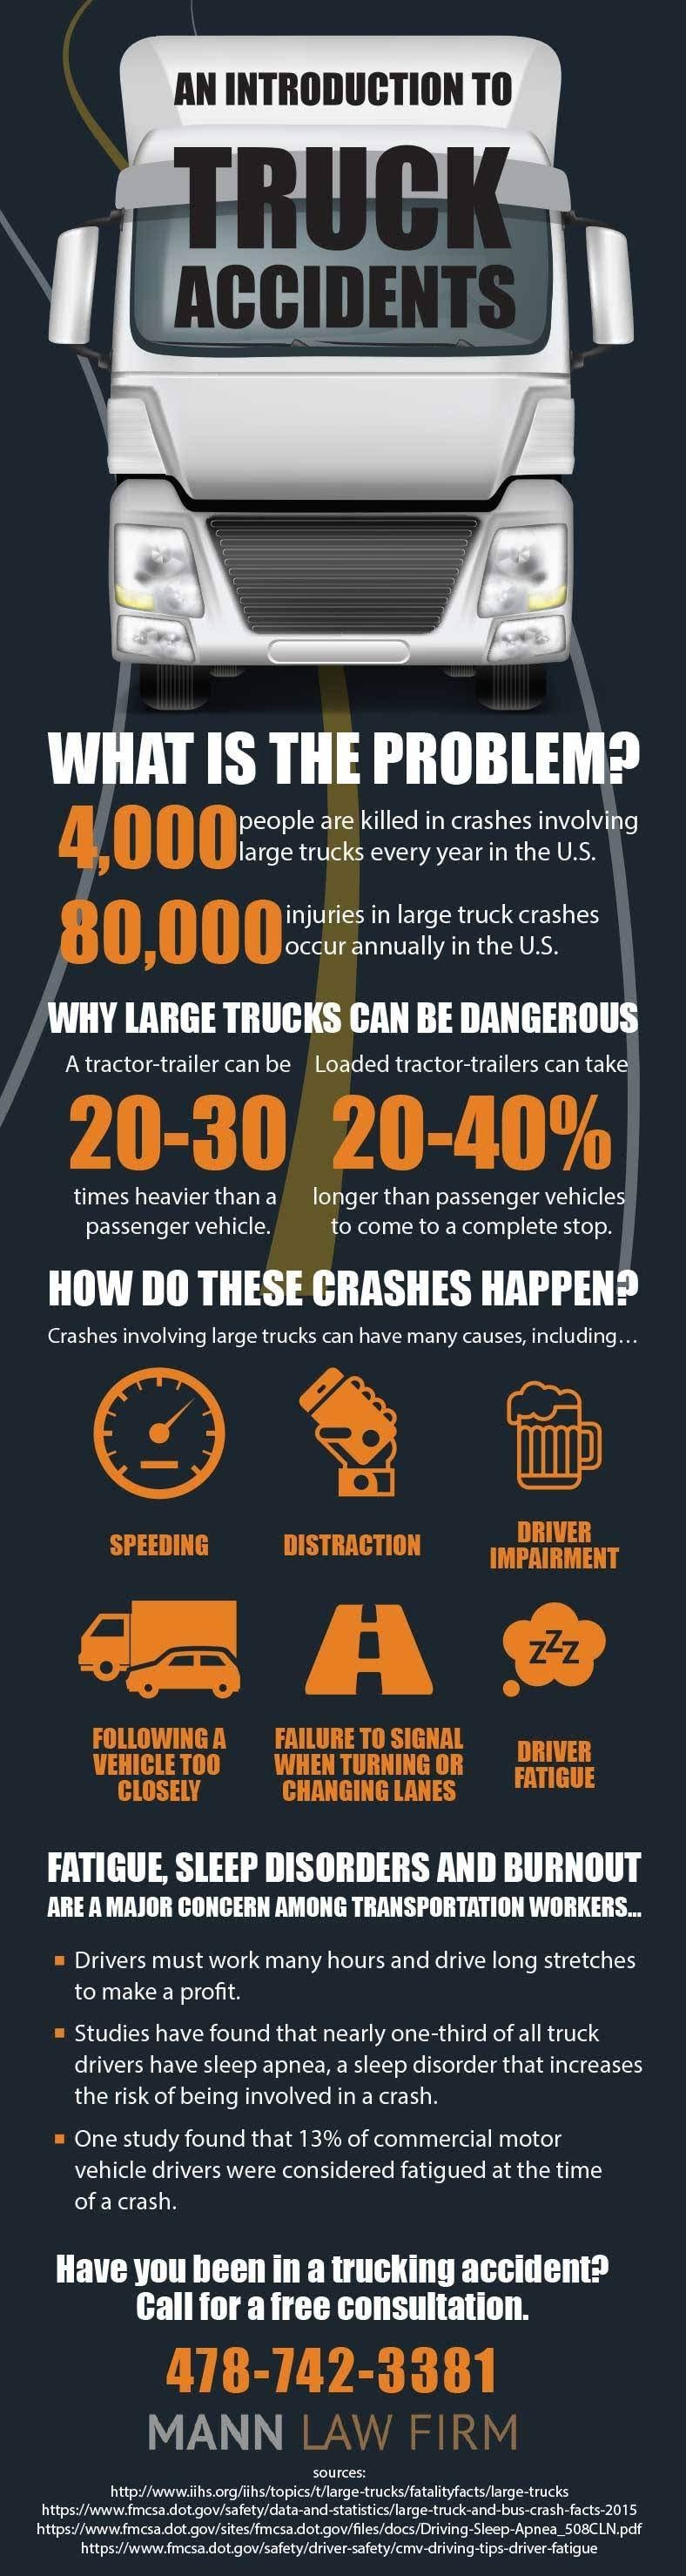 Wrongful Death And Truck Accidents #infographic